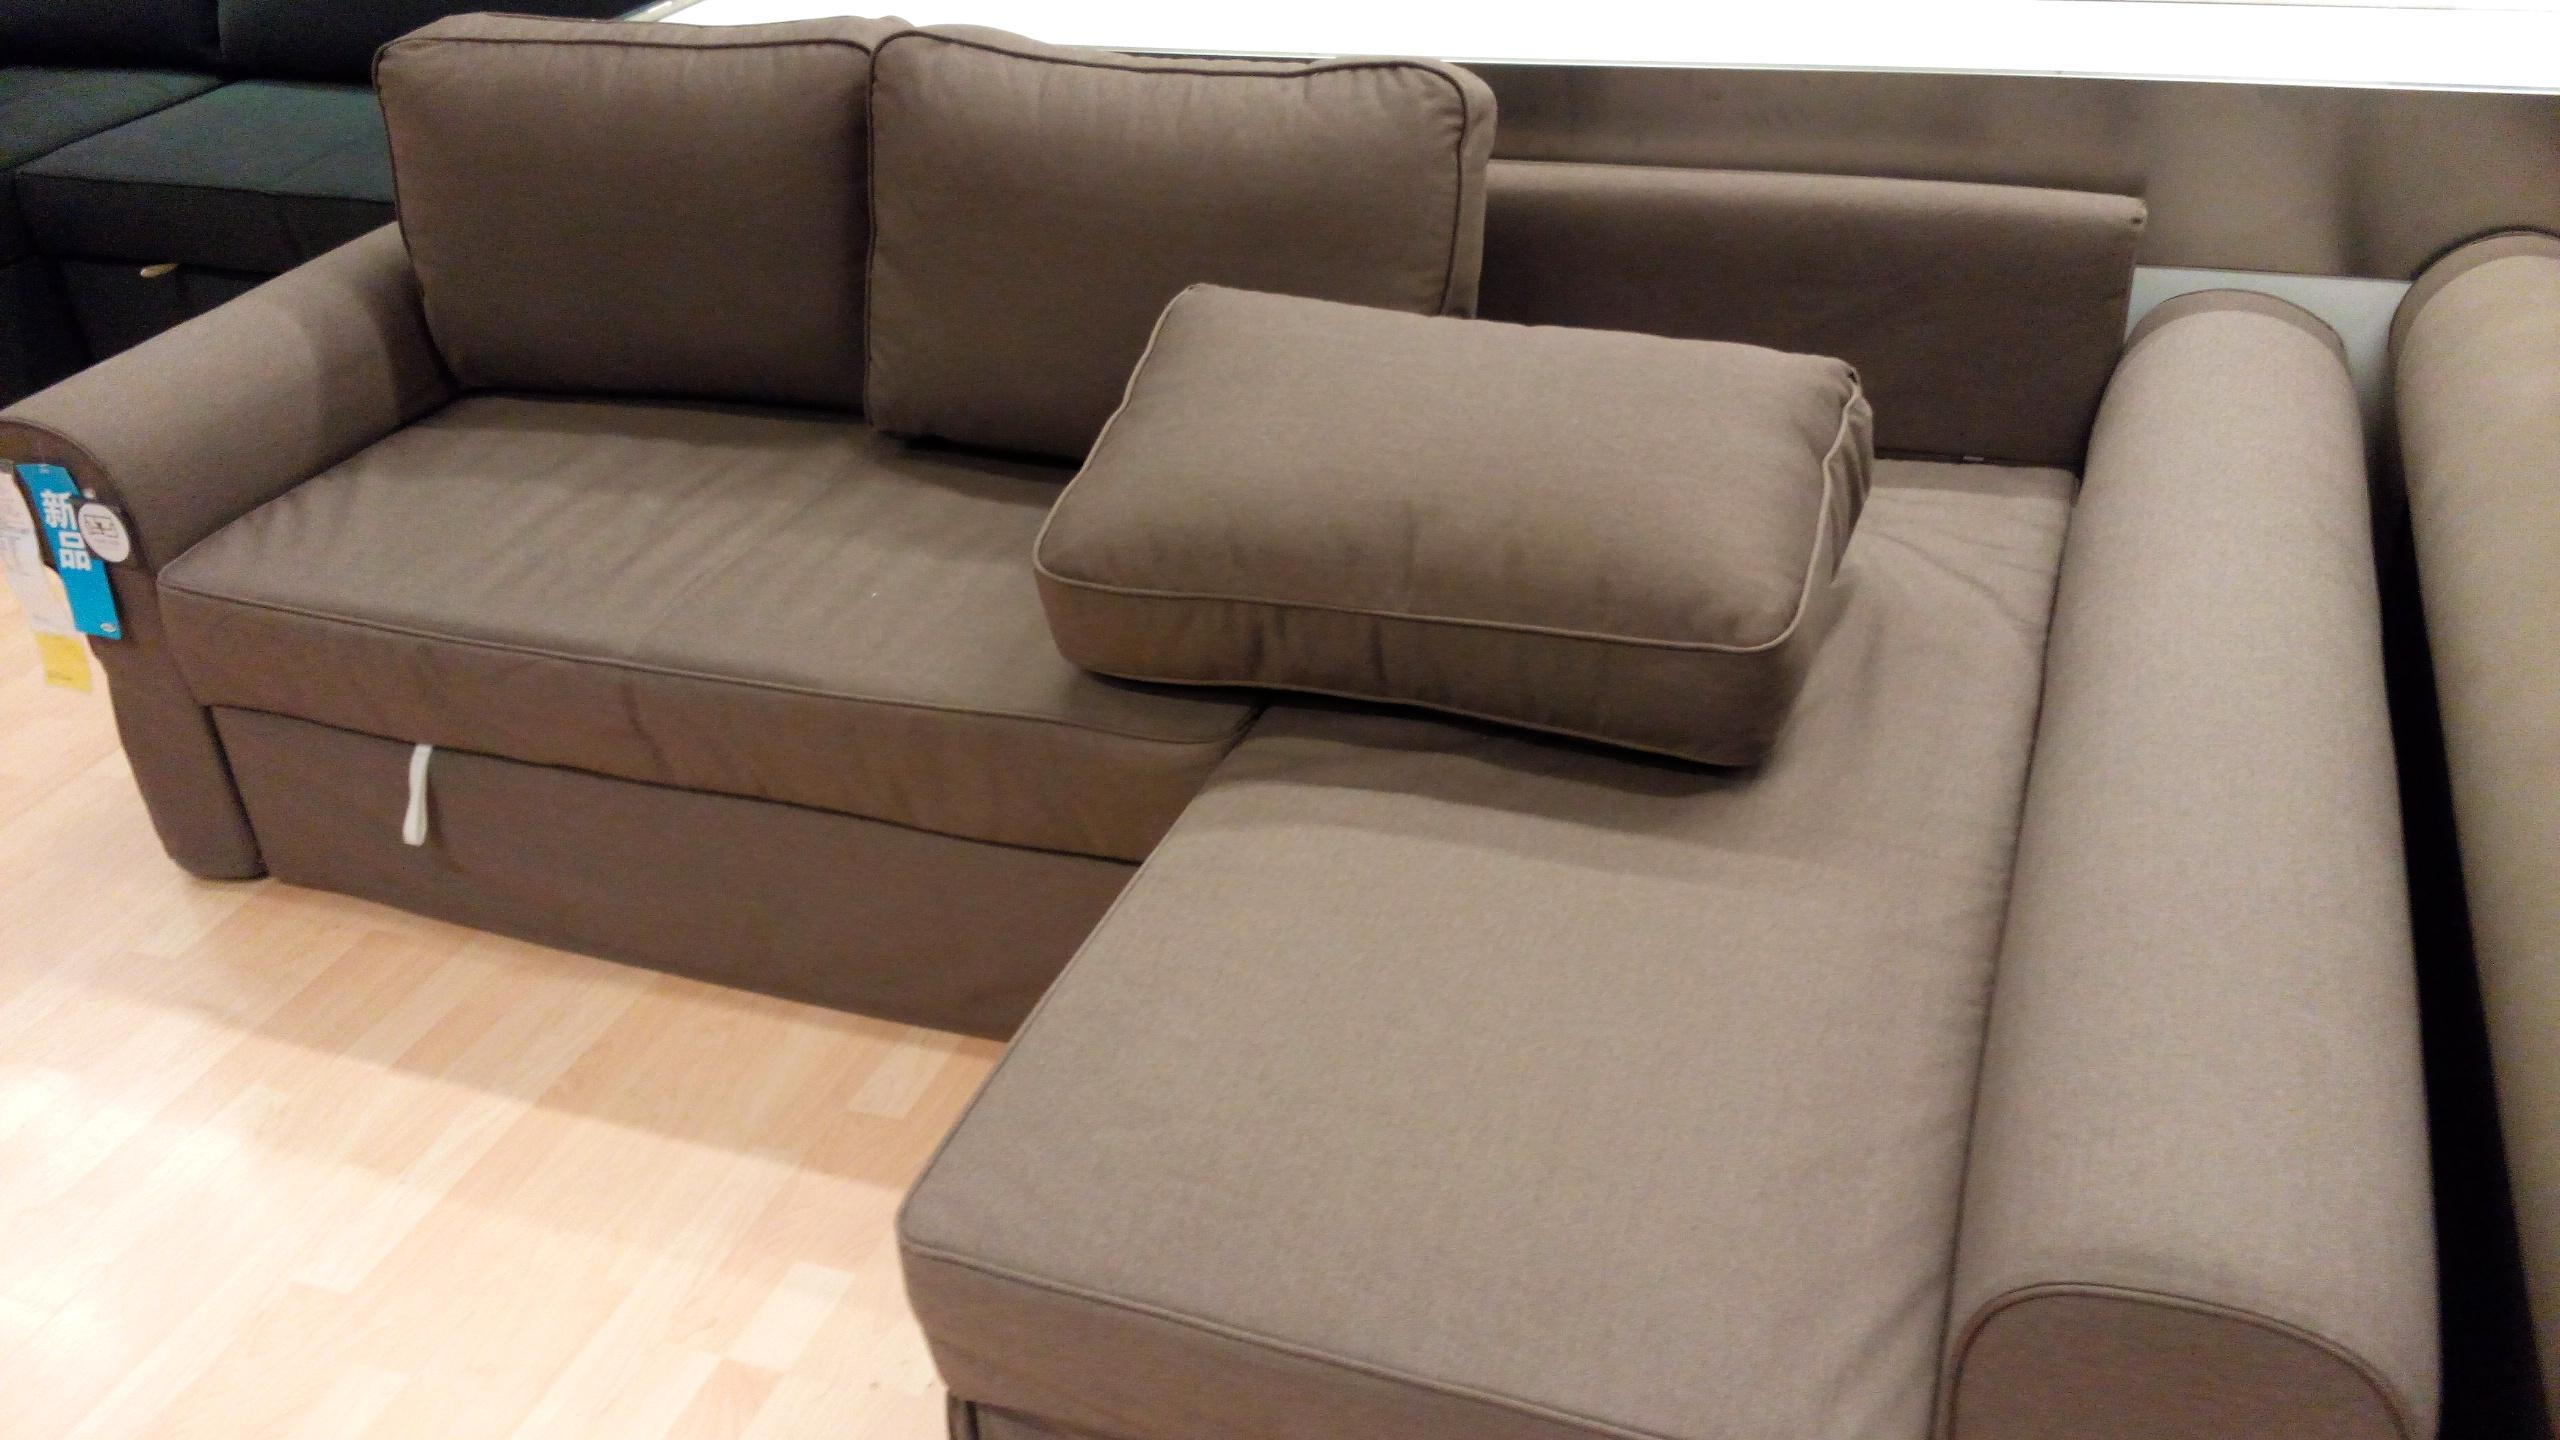 Furniture: Grey Sectional Ikea | Friheten Sofa Bed Review | Ikea Intended For Ikea Sectional Sofa Bed (Image 6 of 20)